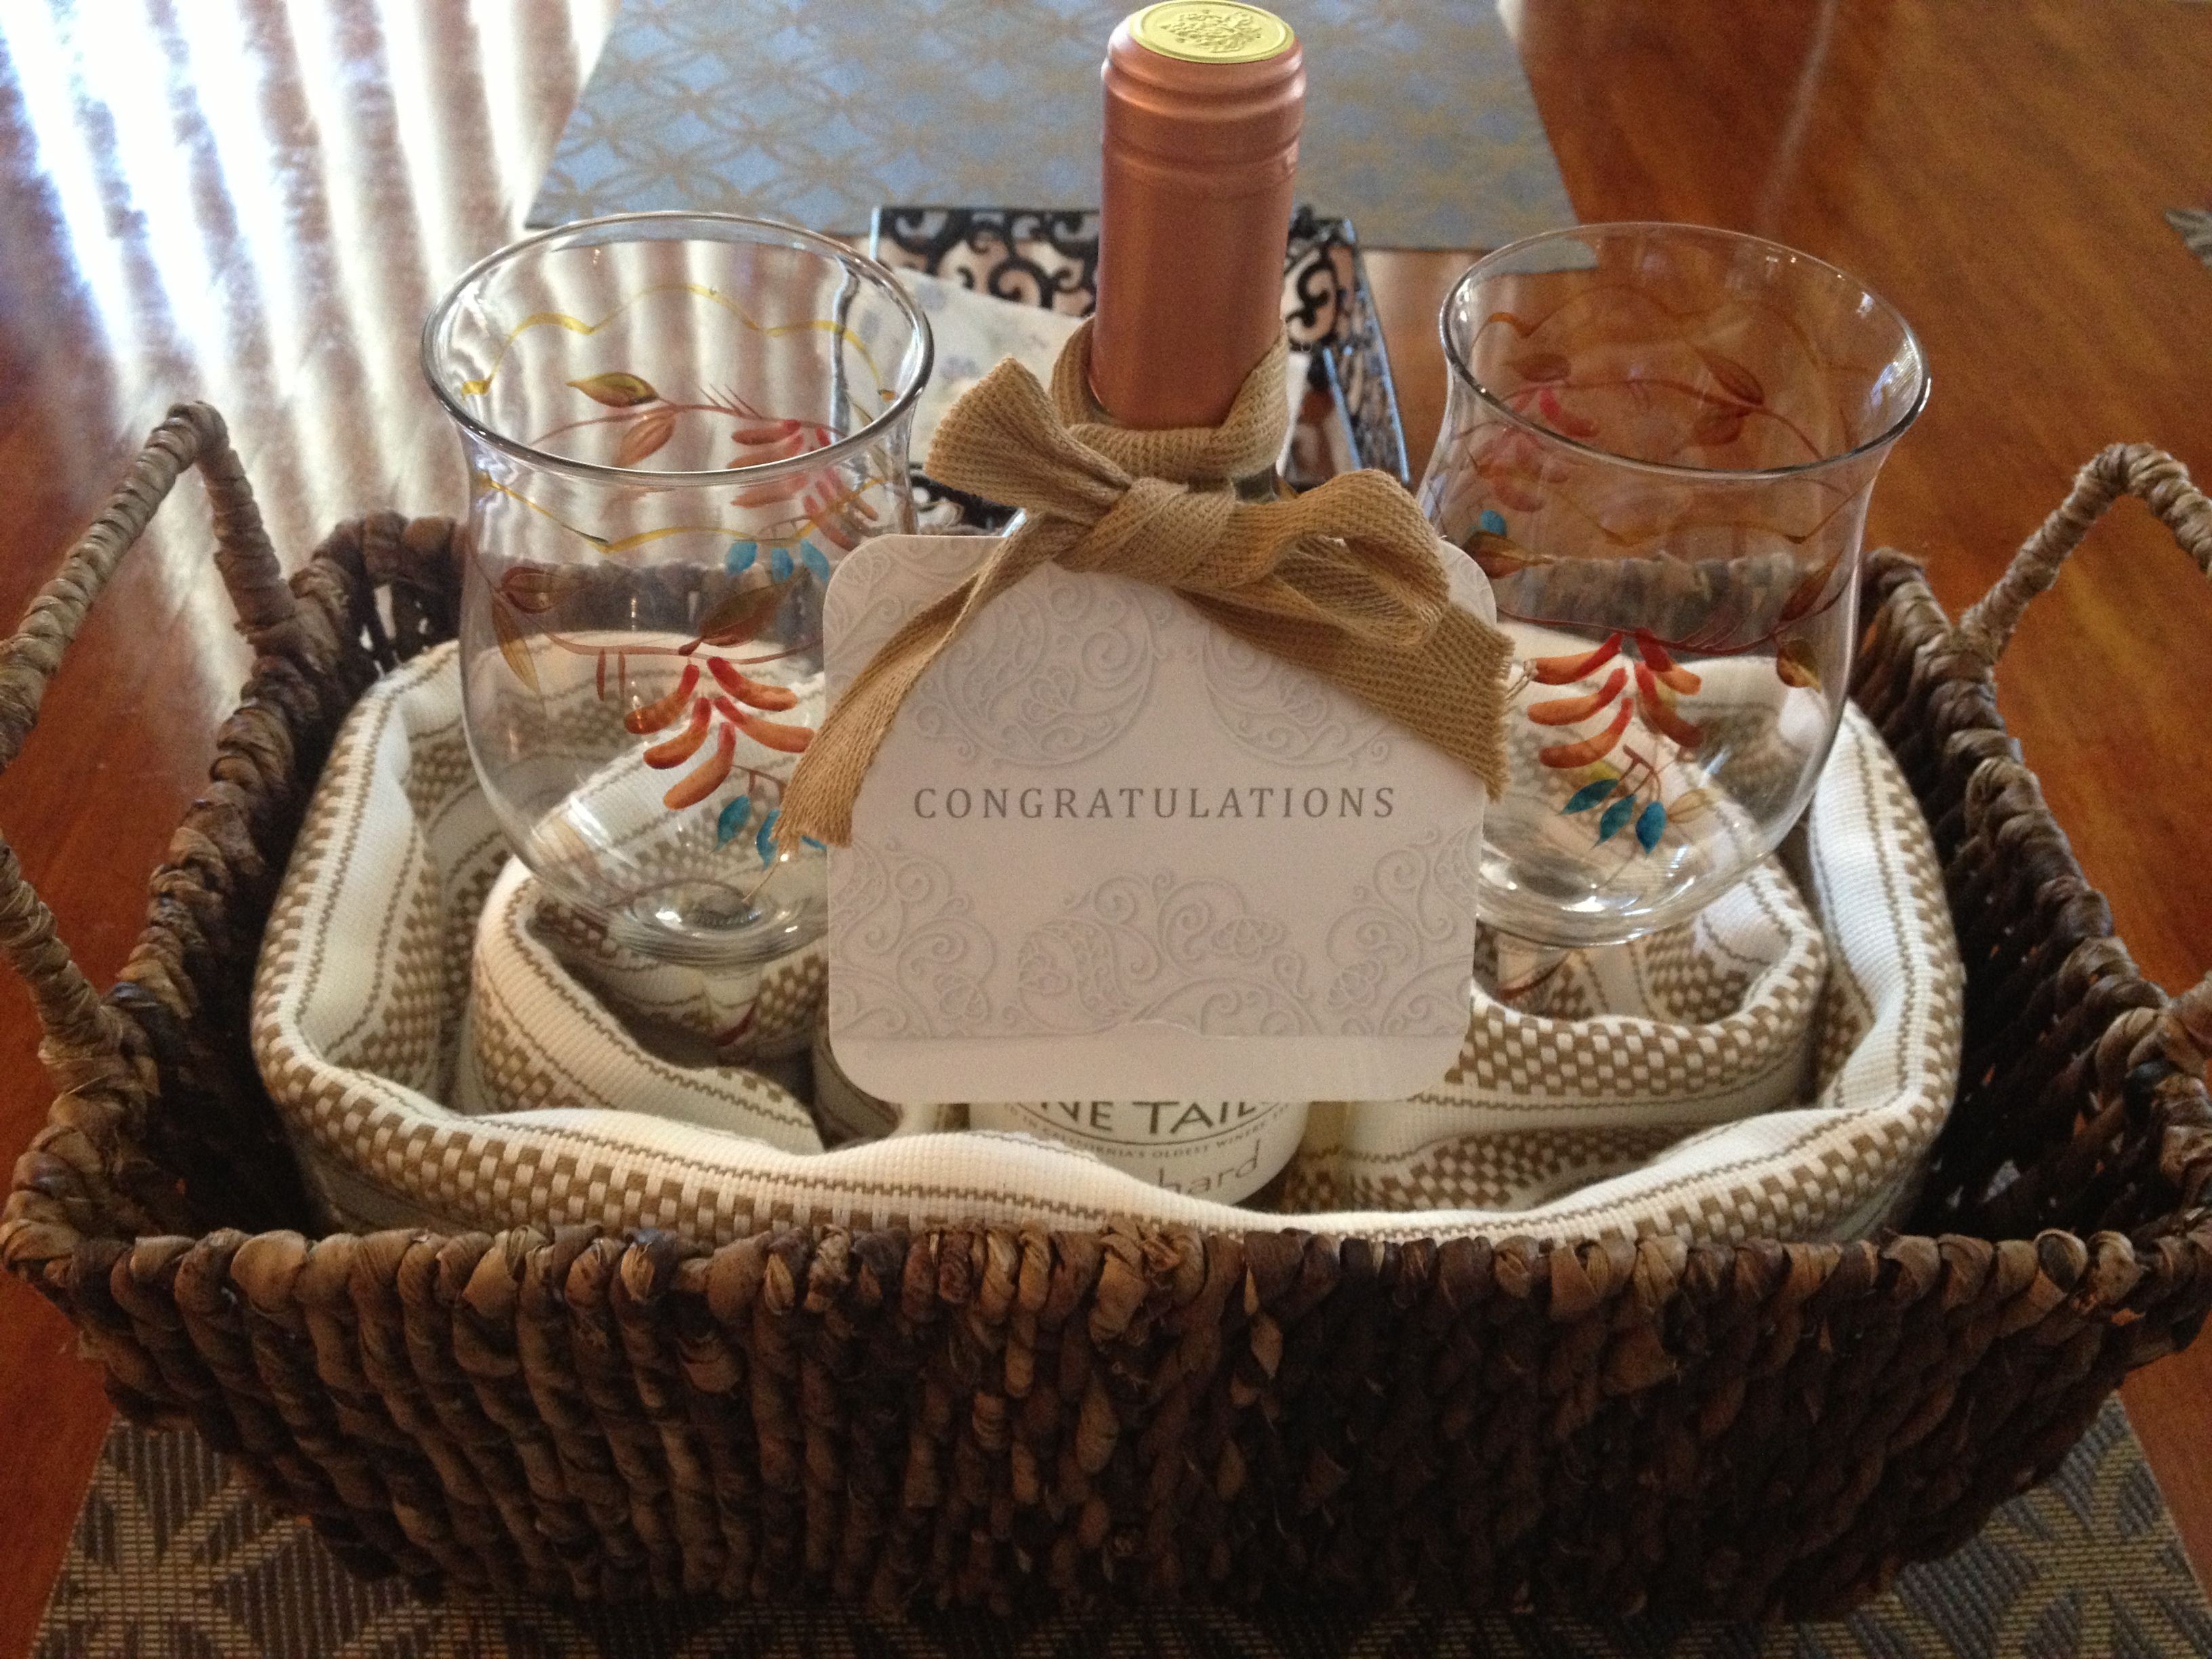 Housewarming Gifts For Young Couples Diy House Warming Gift Wicker Basket Kitchen Towels 2